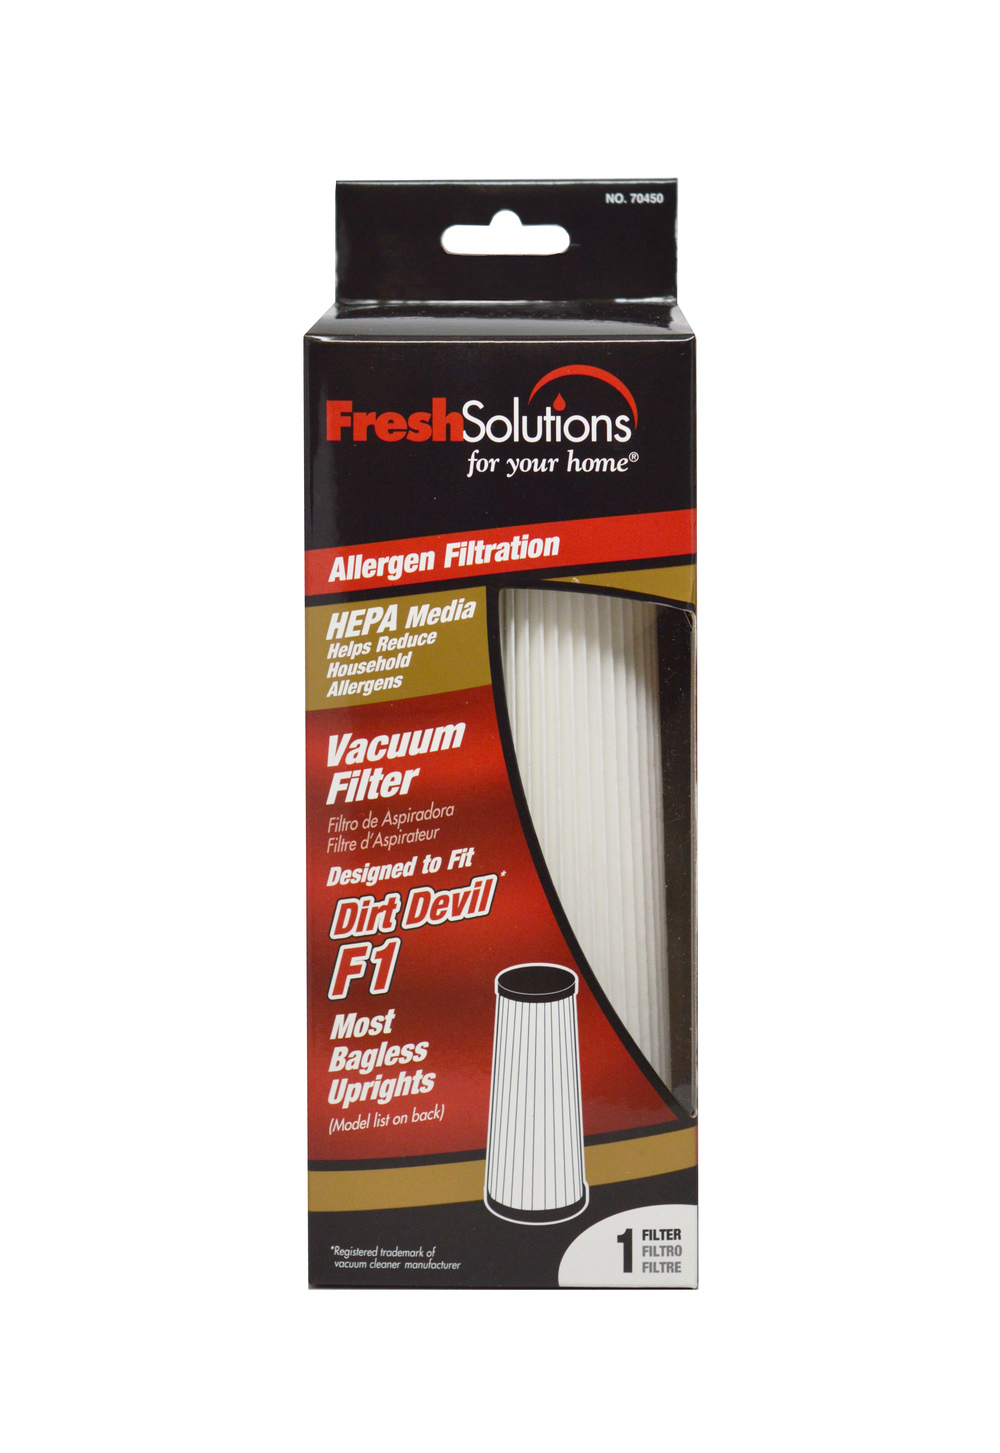 Allergen Filtration Vacuum Filter for Dirt Devil® F1*